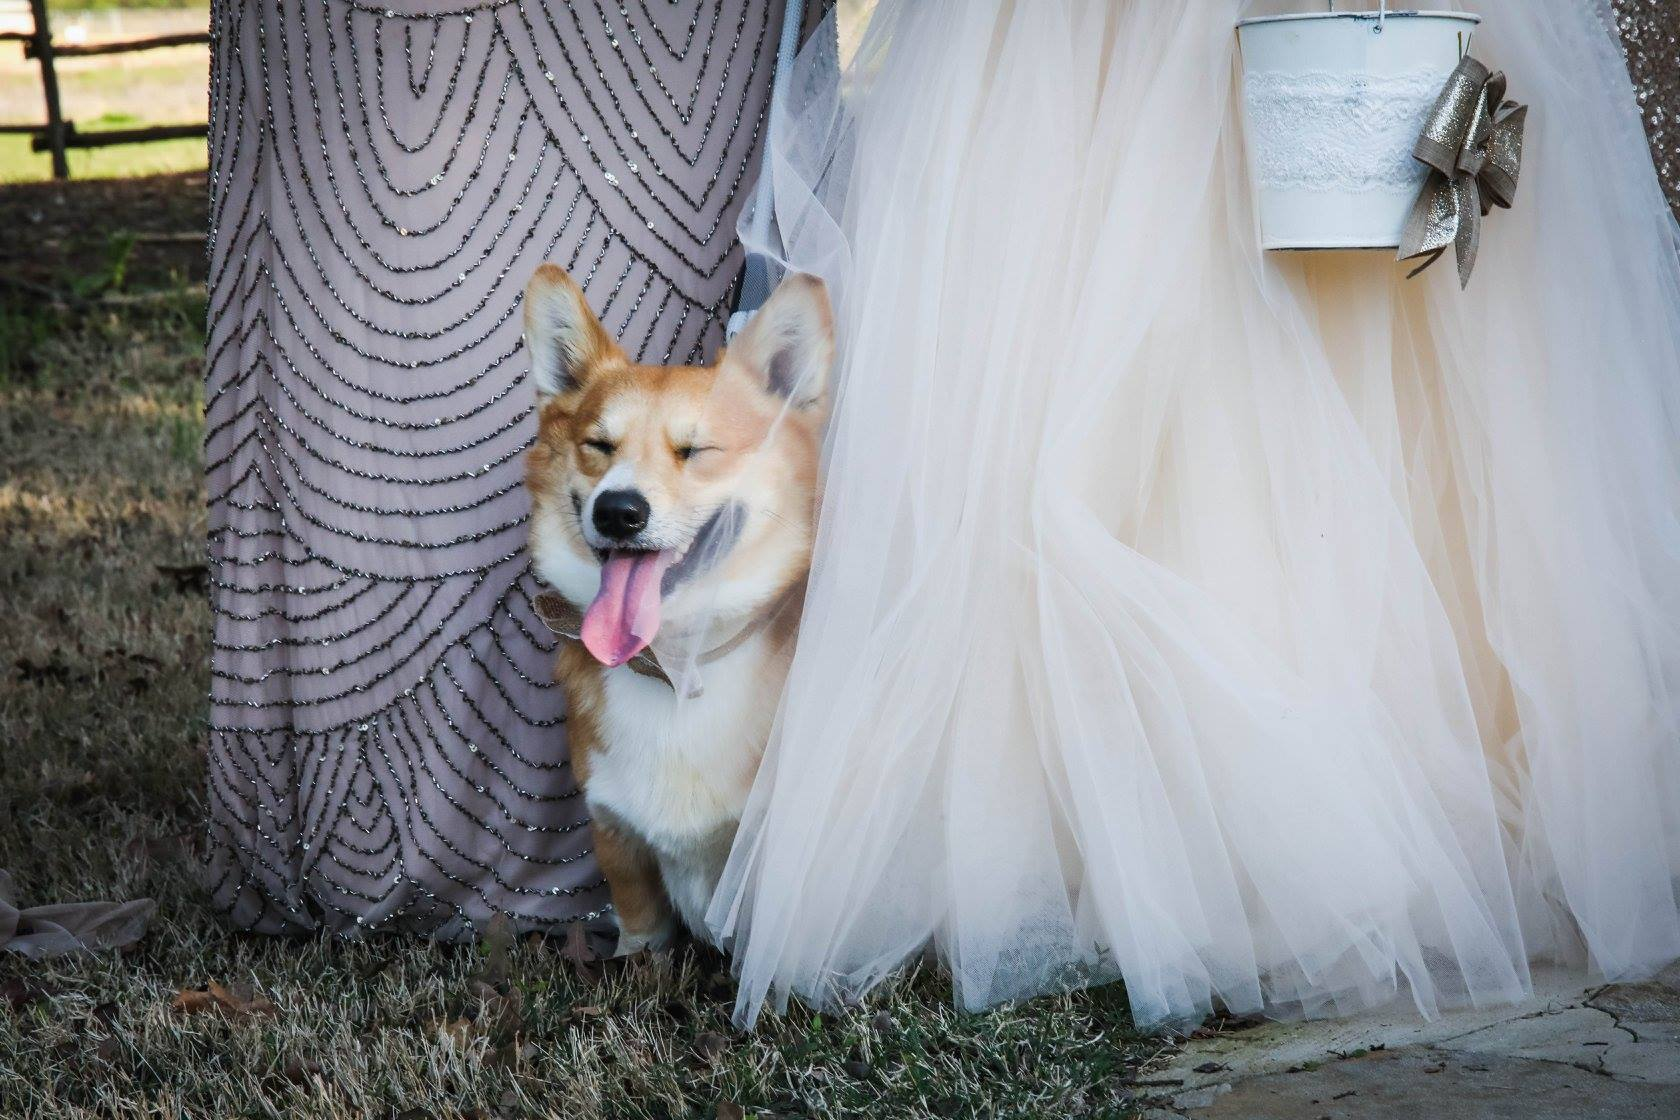 Their beloved dogs made a debut walking the isle